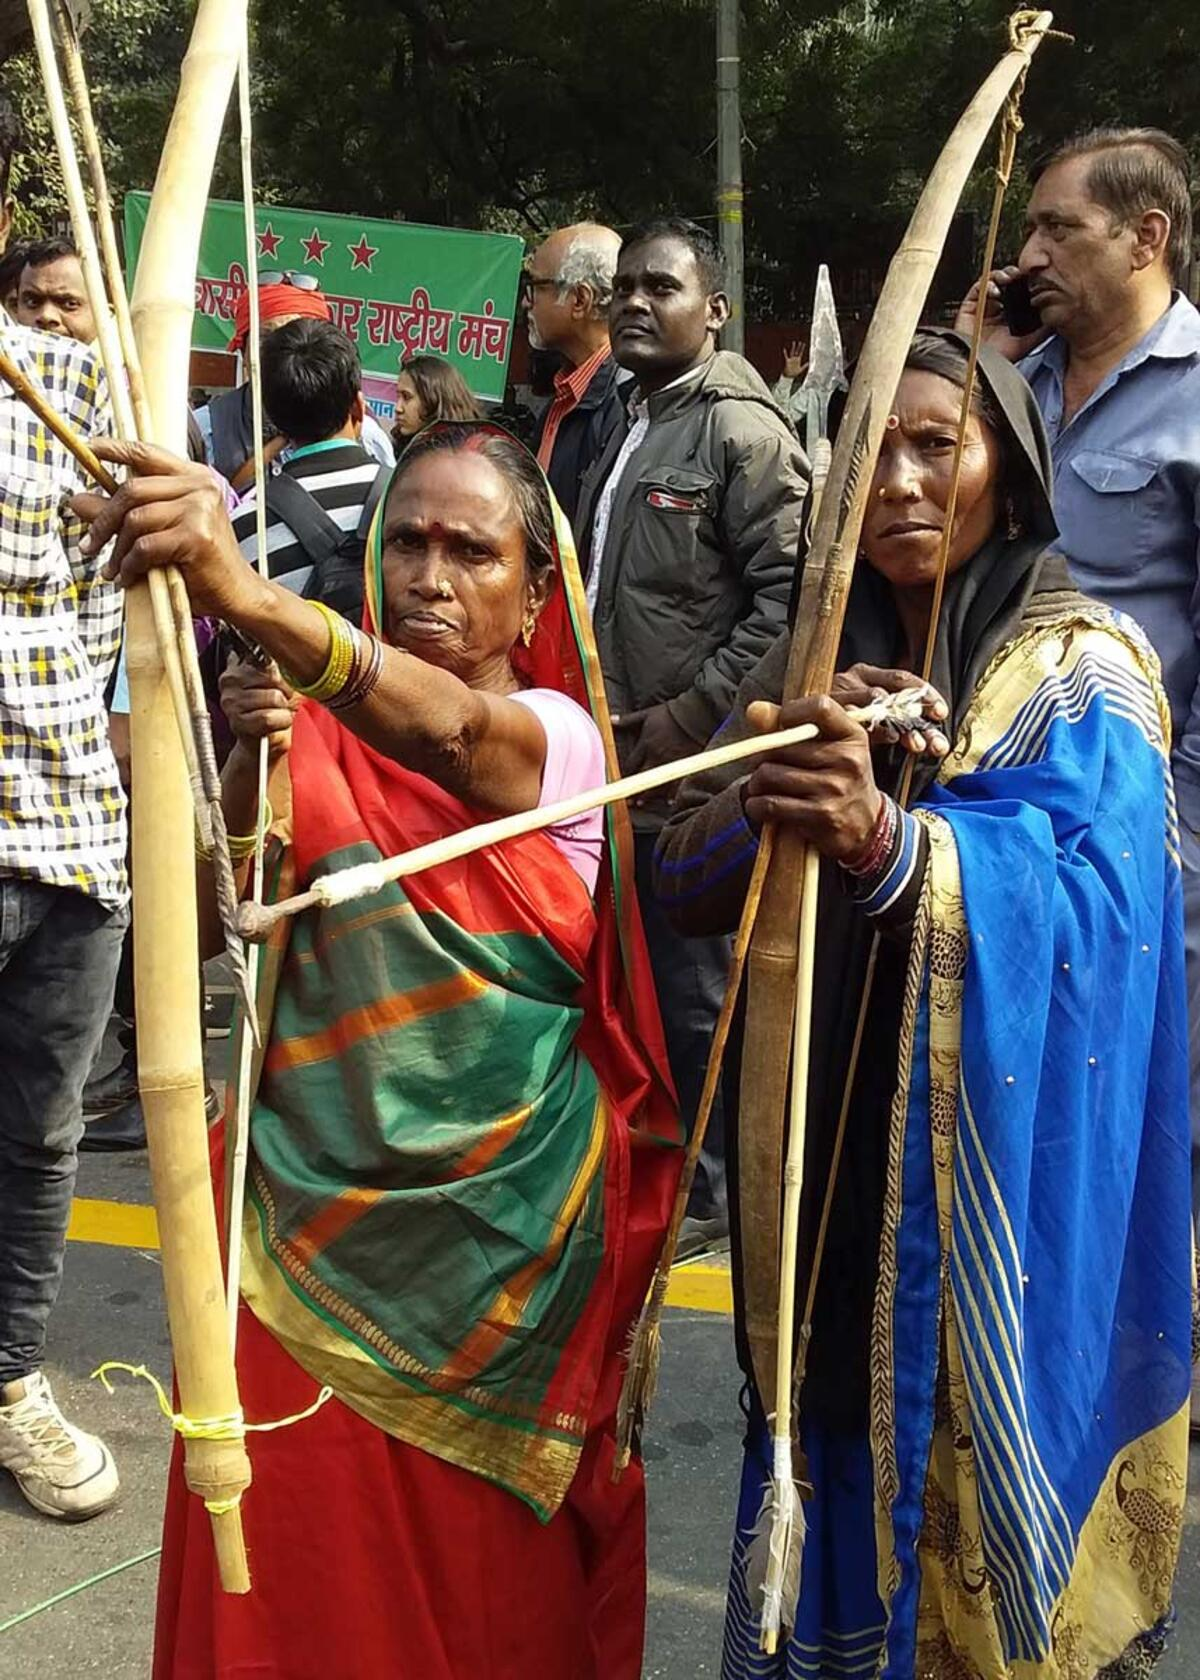 Rajkumari Bhuiya from the Bhuiya Adivasi community in Dhuma village, also from Sonbhadra displaying the traditional bow and arrows her community uses to defend their land from predators. Credit: The Oakland Institute